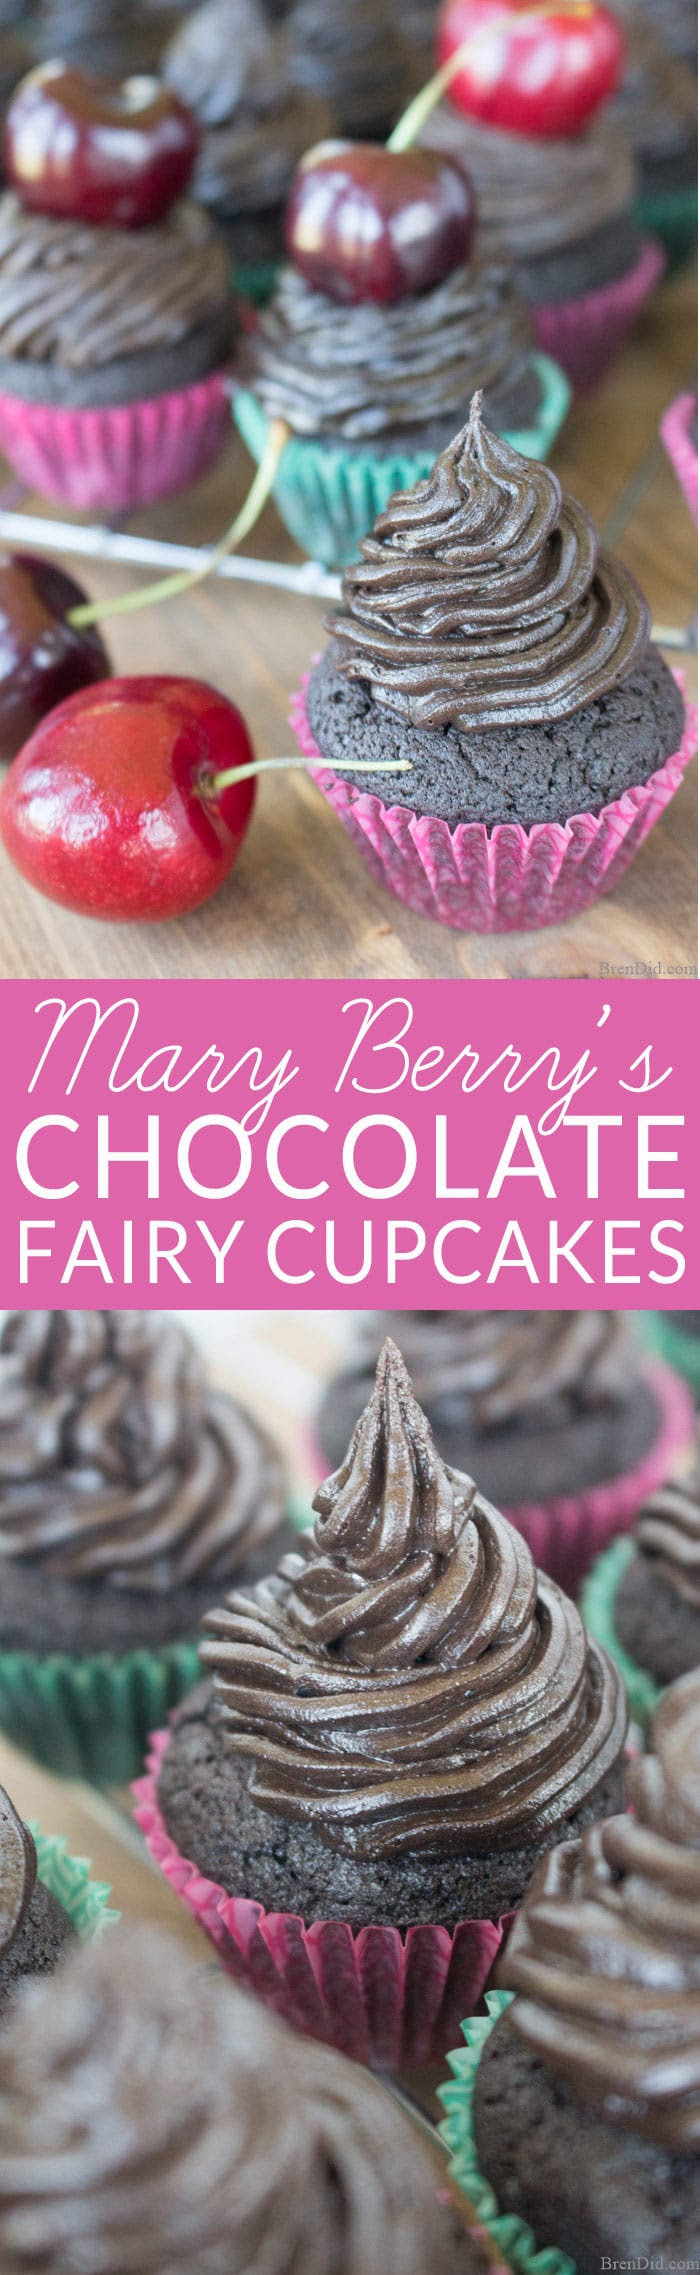 Mary Berry's Fairy Cakes: Chocolate Cupcake Recipe - Bren Did